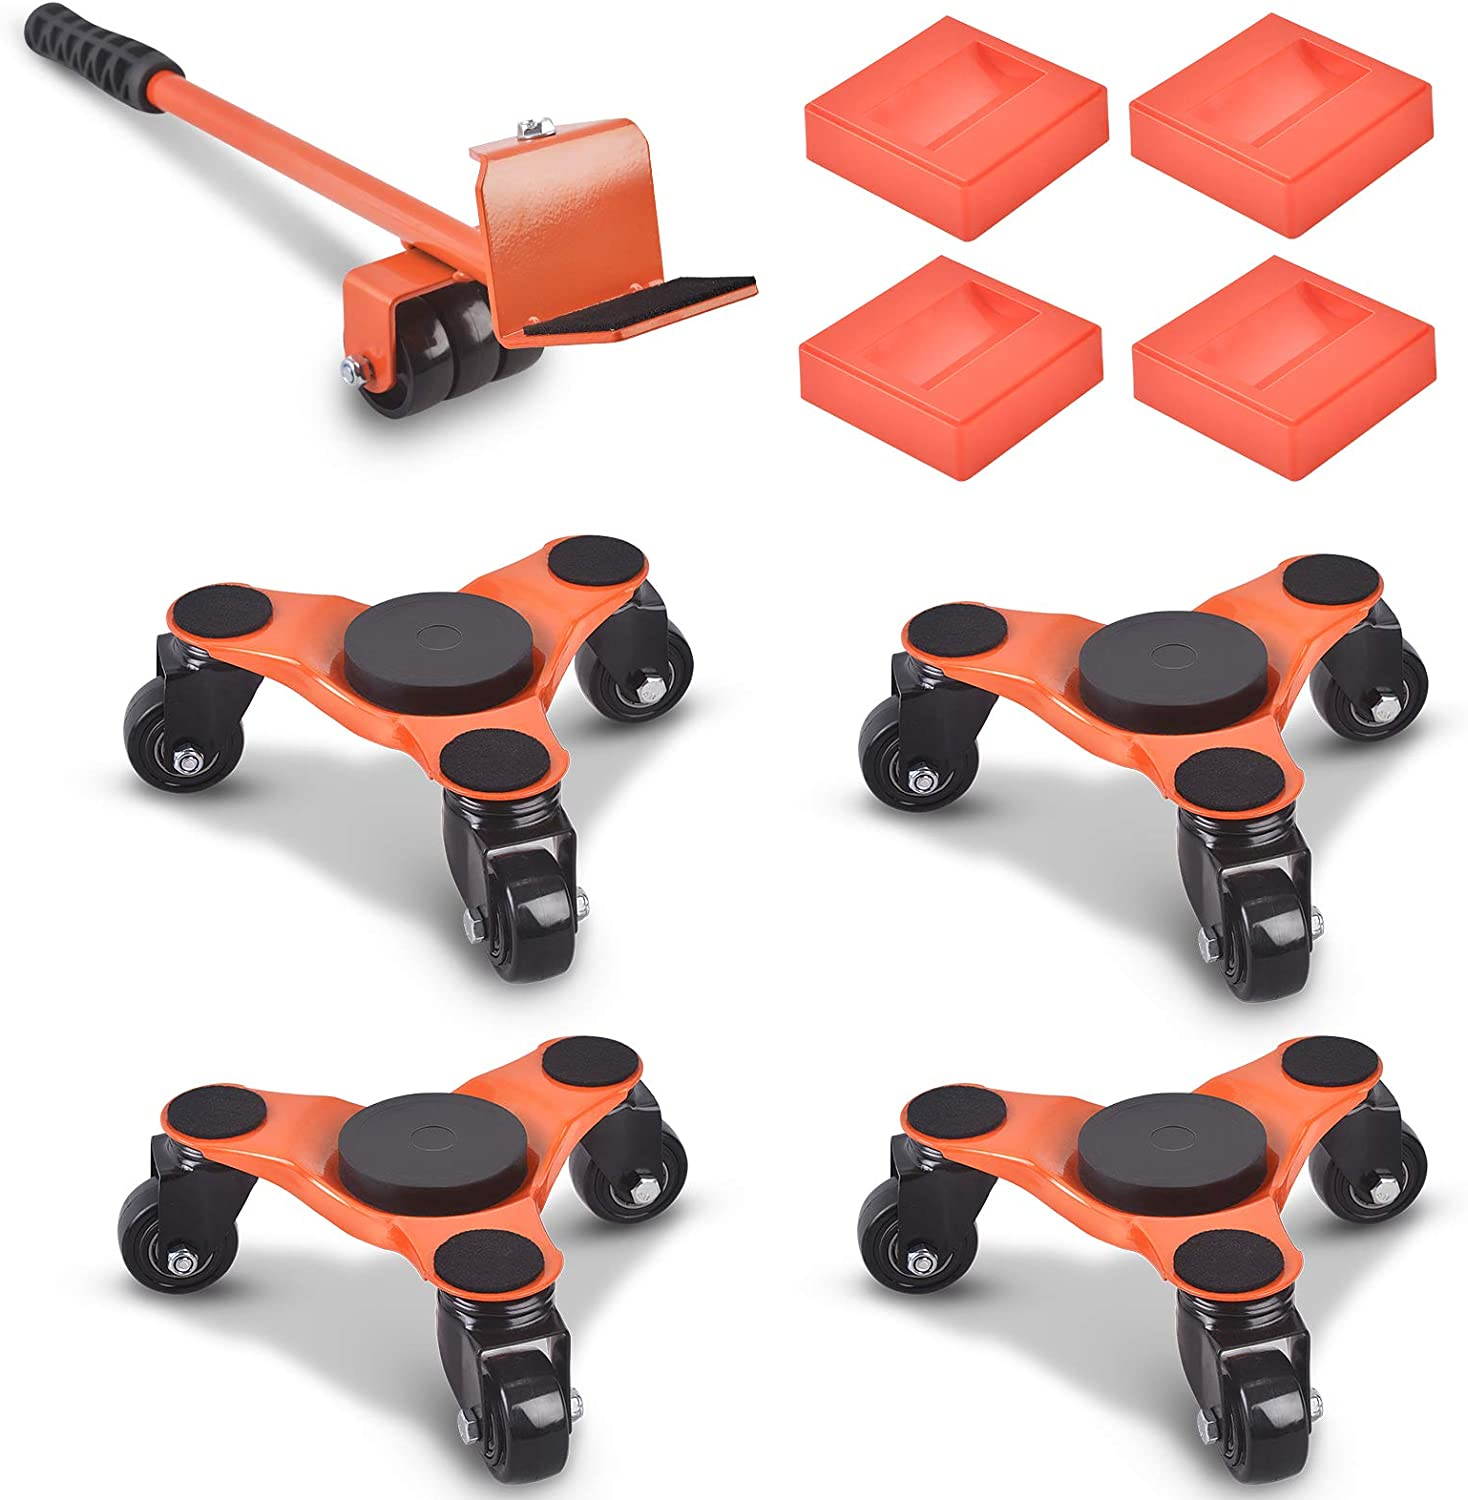 Ronlap 6-Inch Steel Tri-Dolly, 3 Wheels Furniture Mover's Dolly with Lifer, Heavy Furniture Moving Rollers Leg Dolly, Moving Triangle Dolly Swivel Caster, 130 Lbs Capacity Each Pack, 4 Pack, Orange